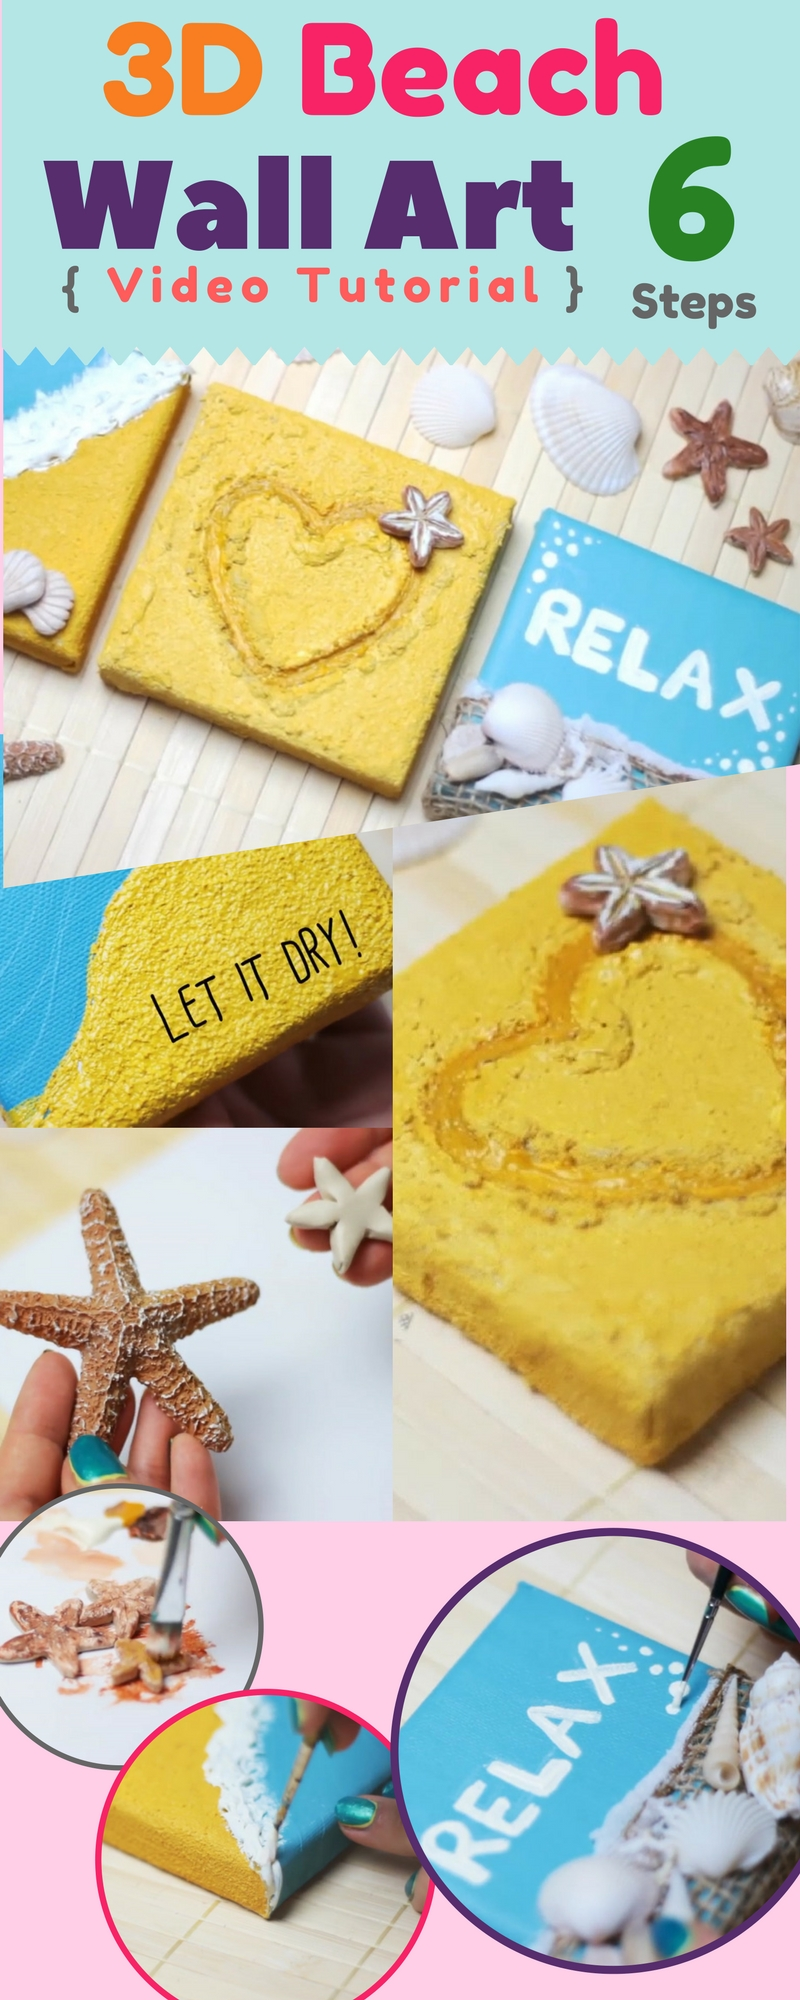 Effortless relaxing room decor diy 3d beach canvas wall art video 3d wall decor arts diy step by step tutorial baditri Image collections